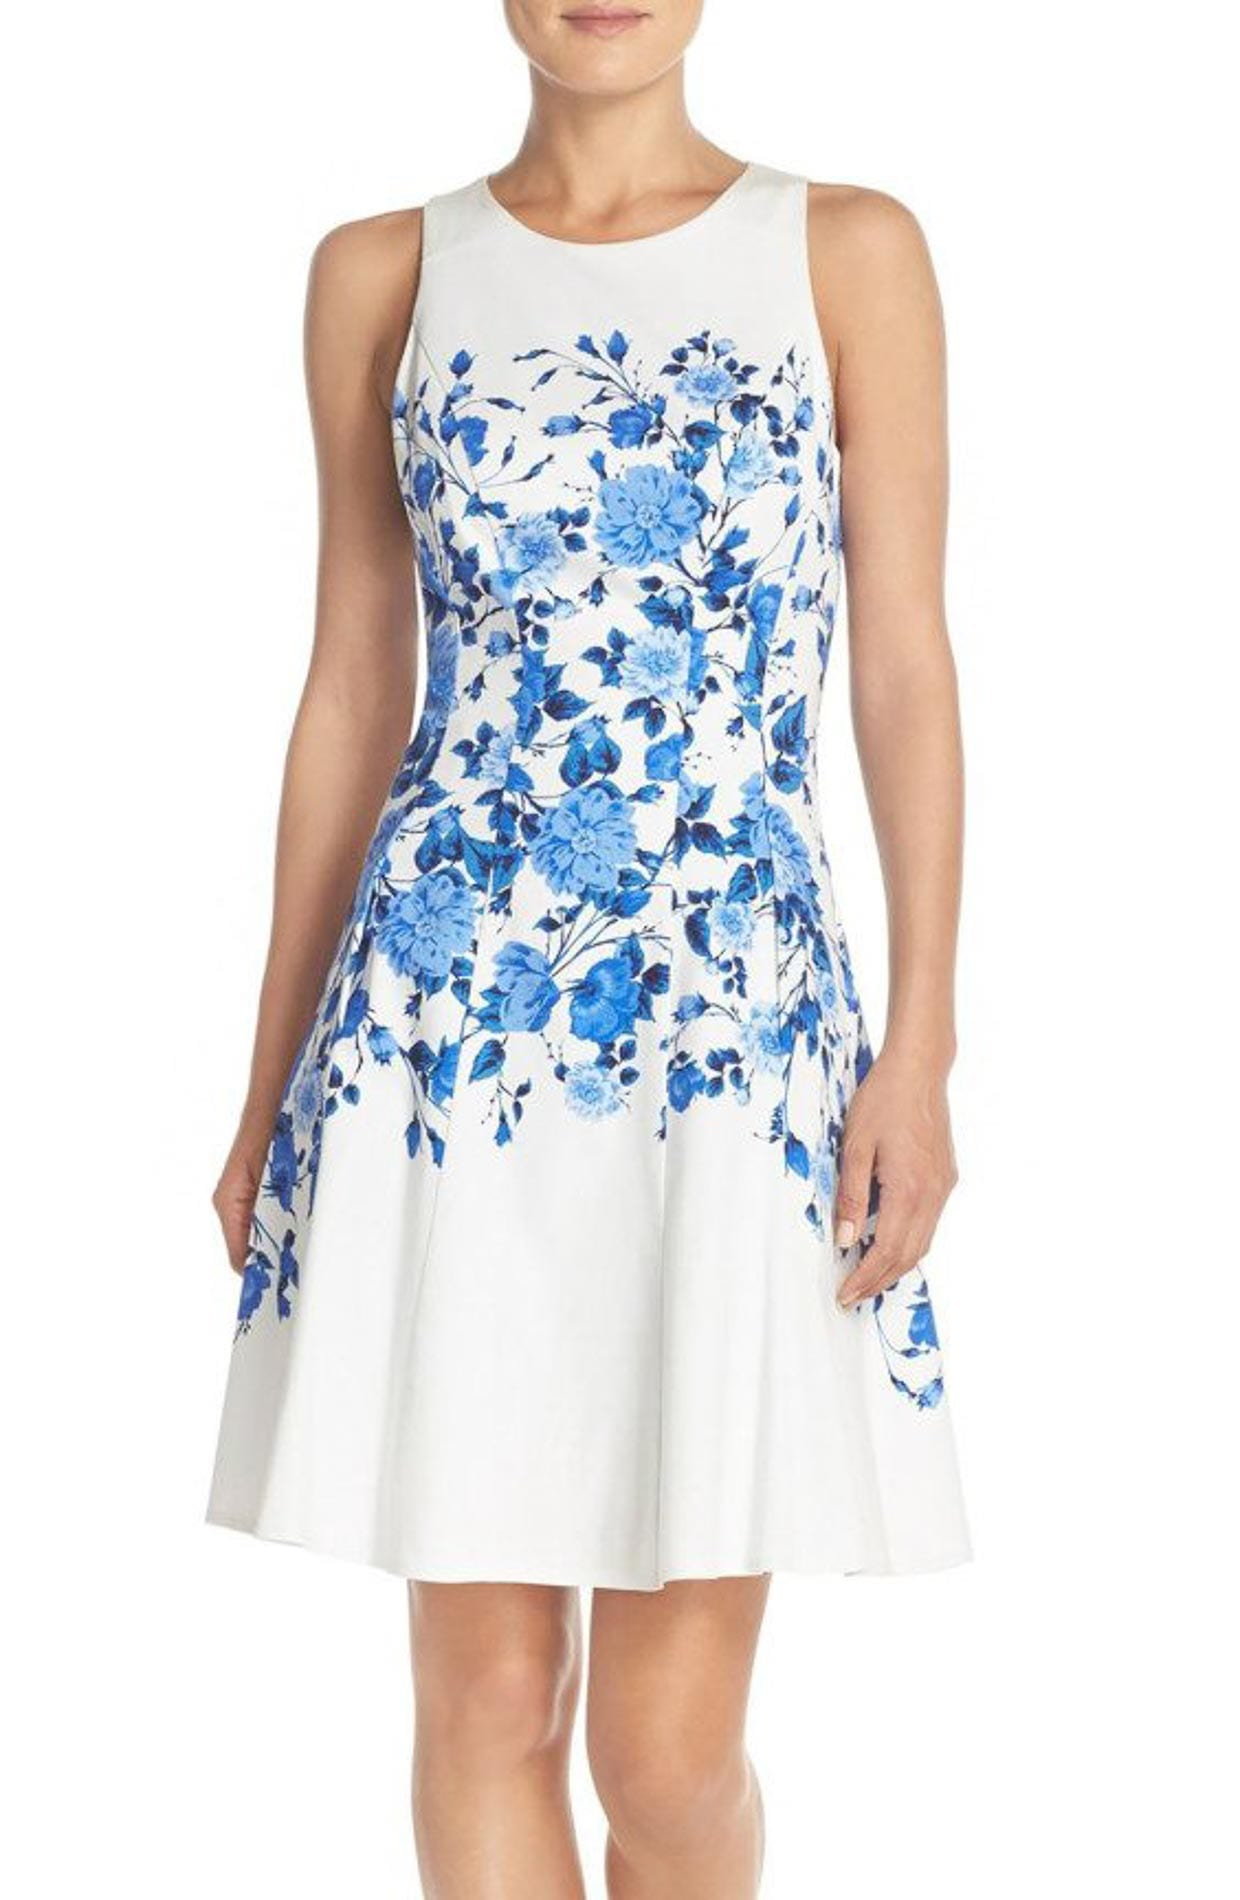 9d0f43a05b4b The Best Dresses at Nordstrom Under $100 - Poor Little It Girl